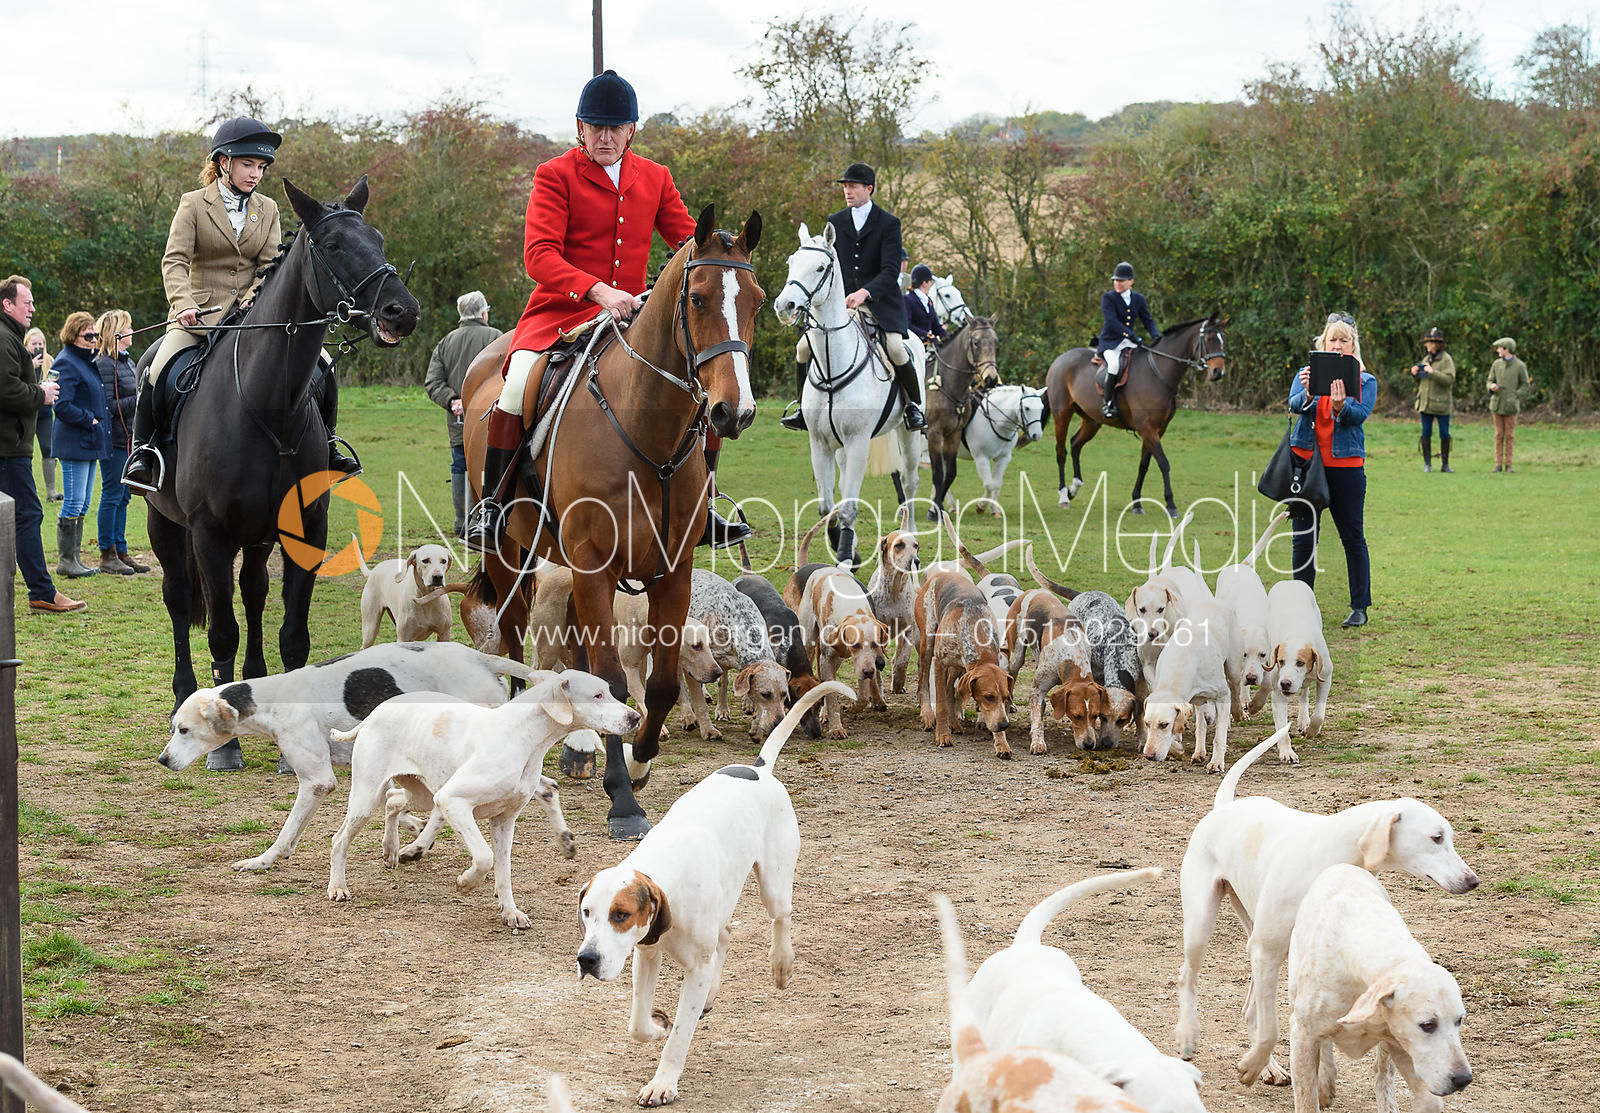 Emily Spence, Peter Collins at the meet. Quorn Hunt Opening Meet 2018